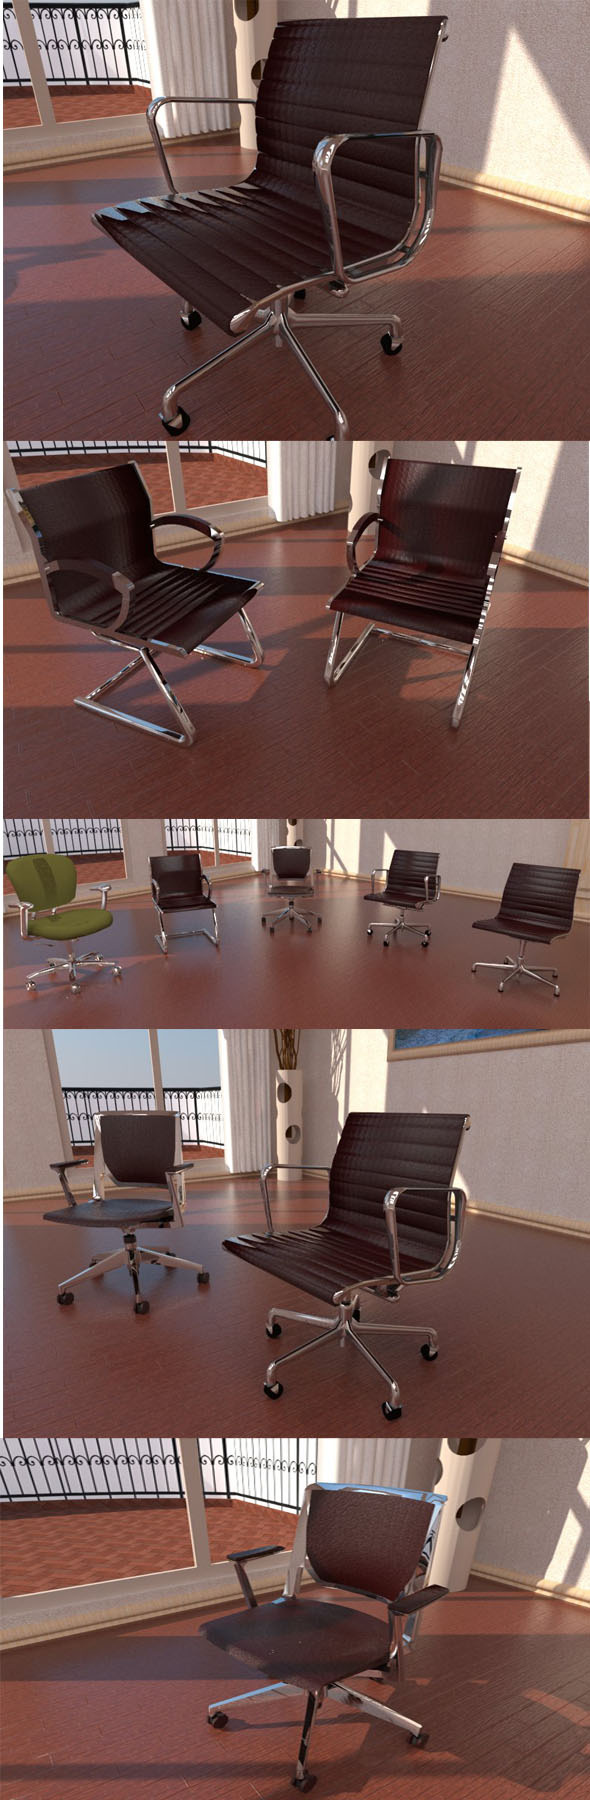 Office chairs collection - 3DOcean Item for Sale